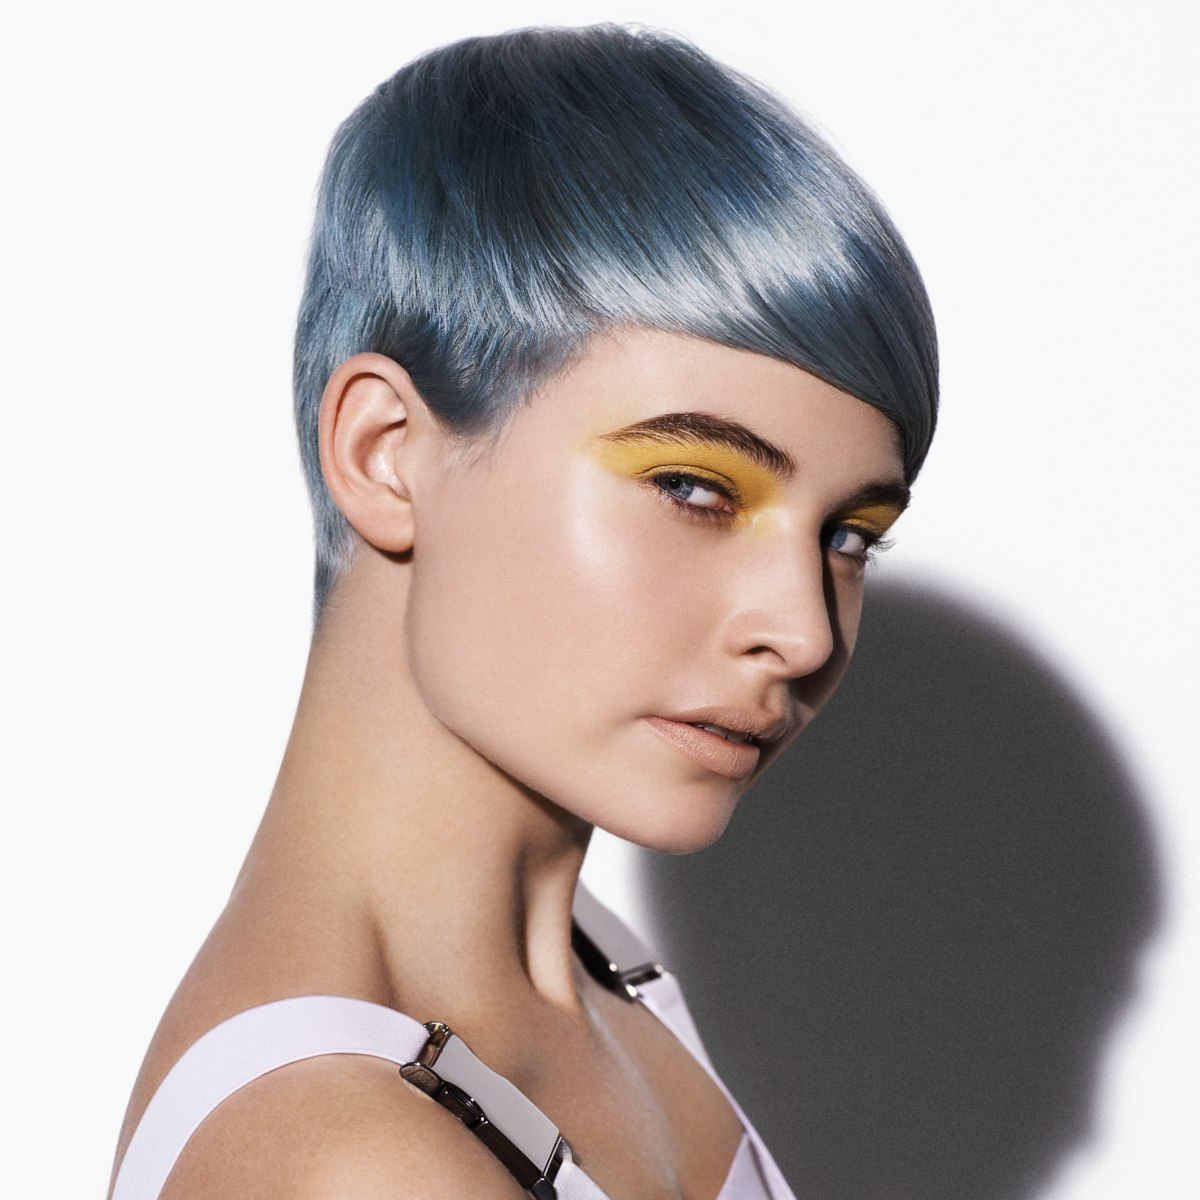 Surprising Short Tomboy Haircut With A Silver Metallic Blue Hair Color Short Hairstyles For Black Women Fulllsitofus